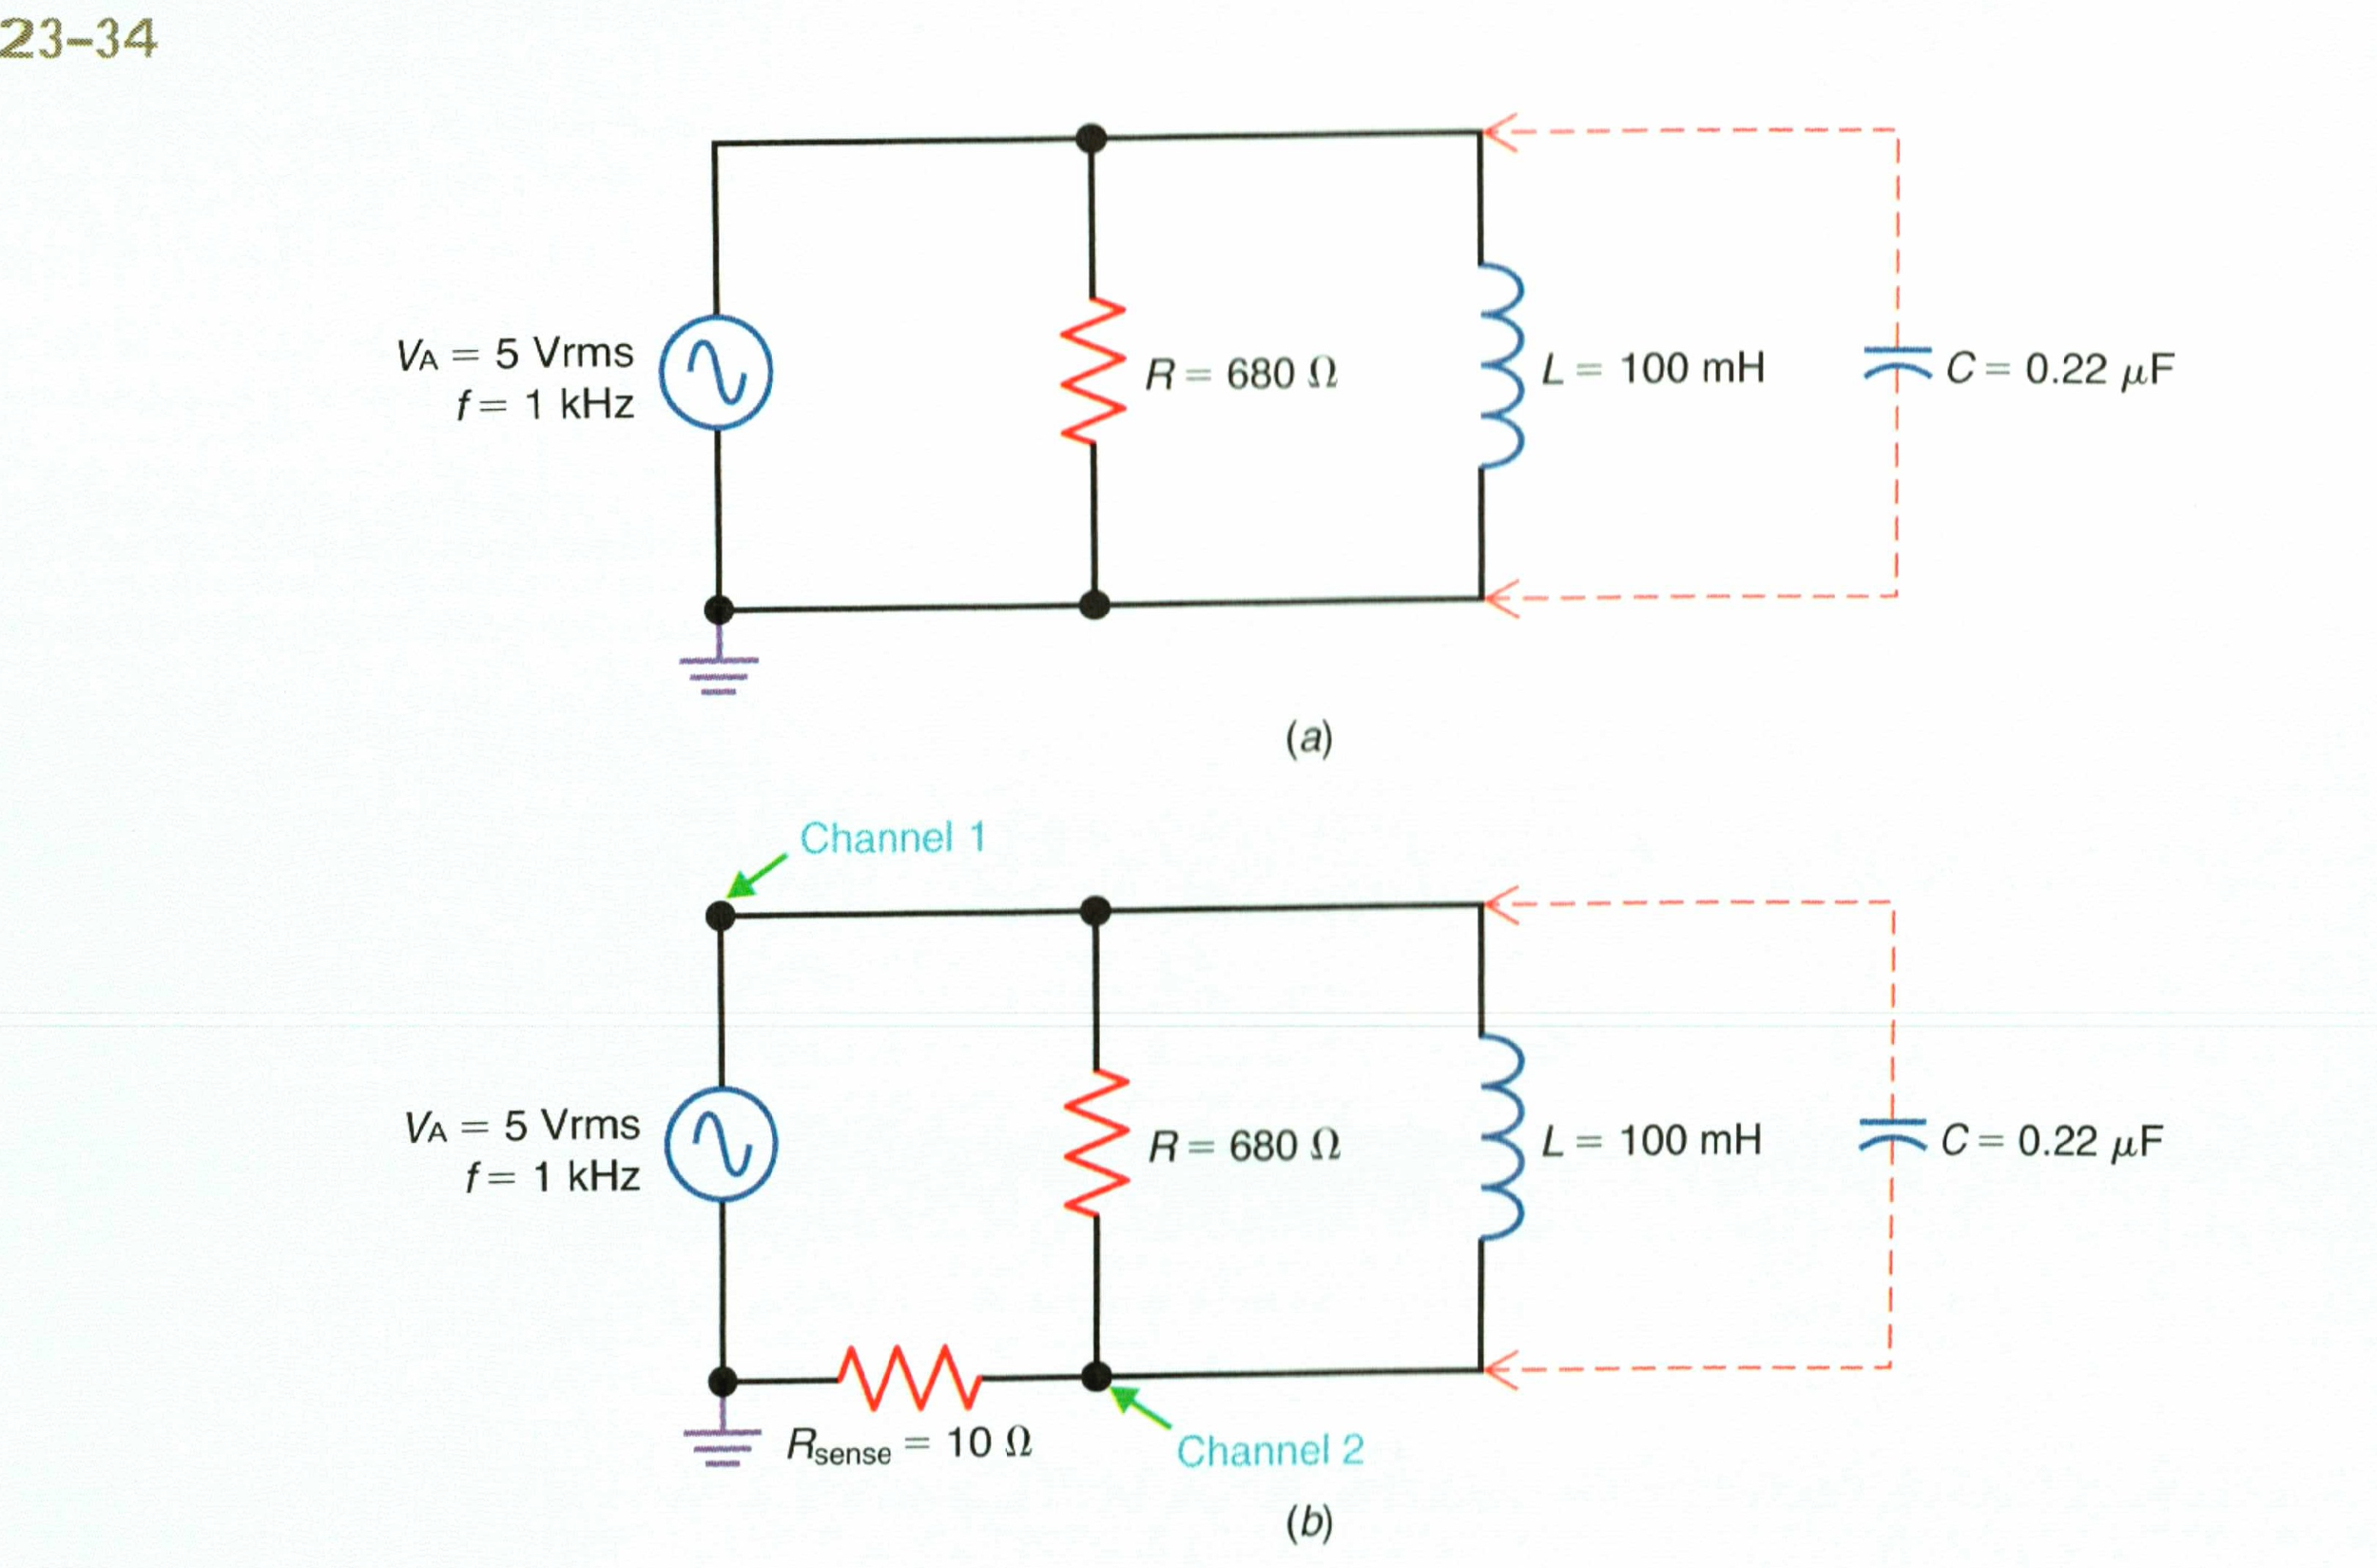 Mentally connect the .22uF capacitor in Fig23-34a